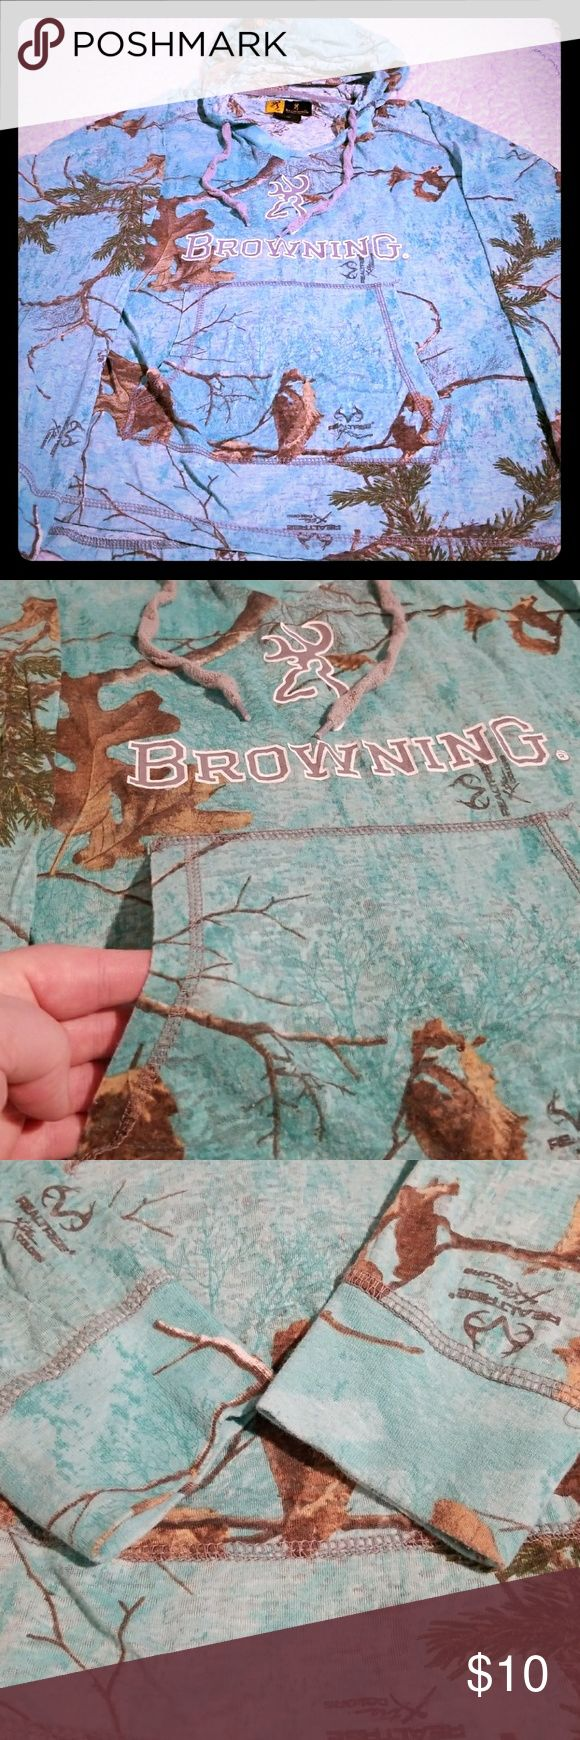 BROWNING BLUE CAMO LONG SLEEVE In excellent condition with no rips, holes or stains. Browning Tops Tees - Long Sleeve